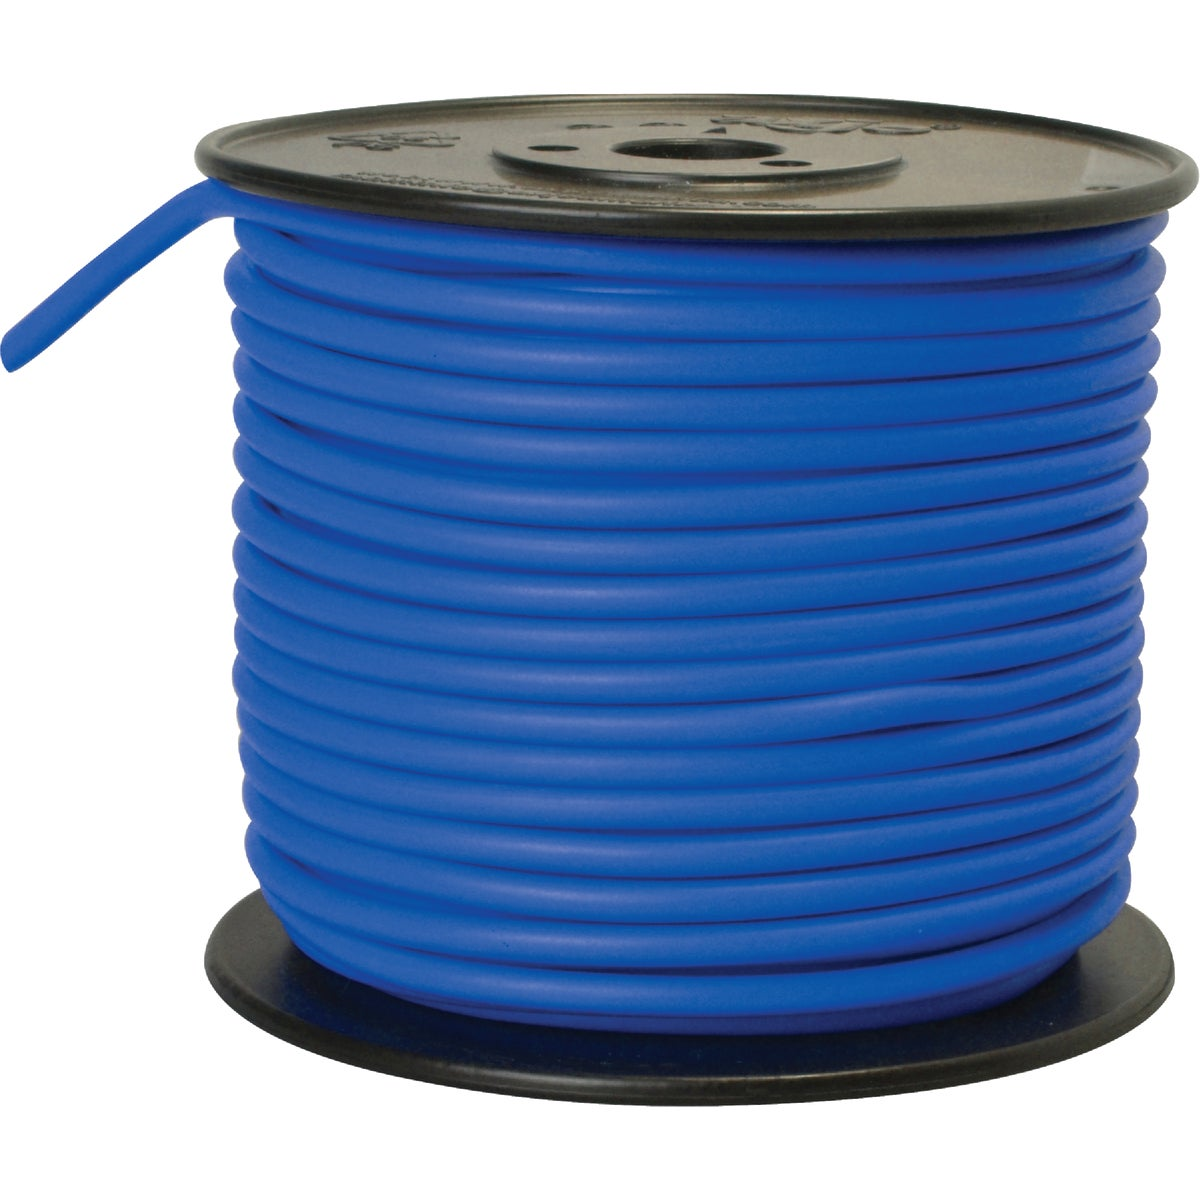 100' 10GA BLUE AUTO WIRE - 10-100-12 by Woods Wire Coleman